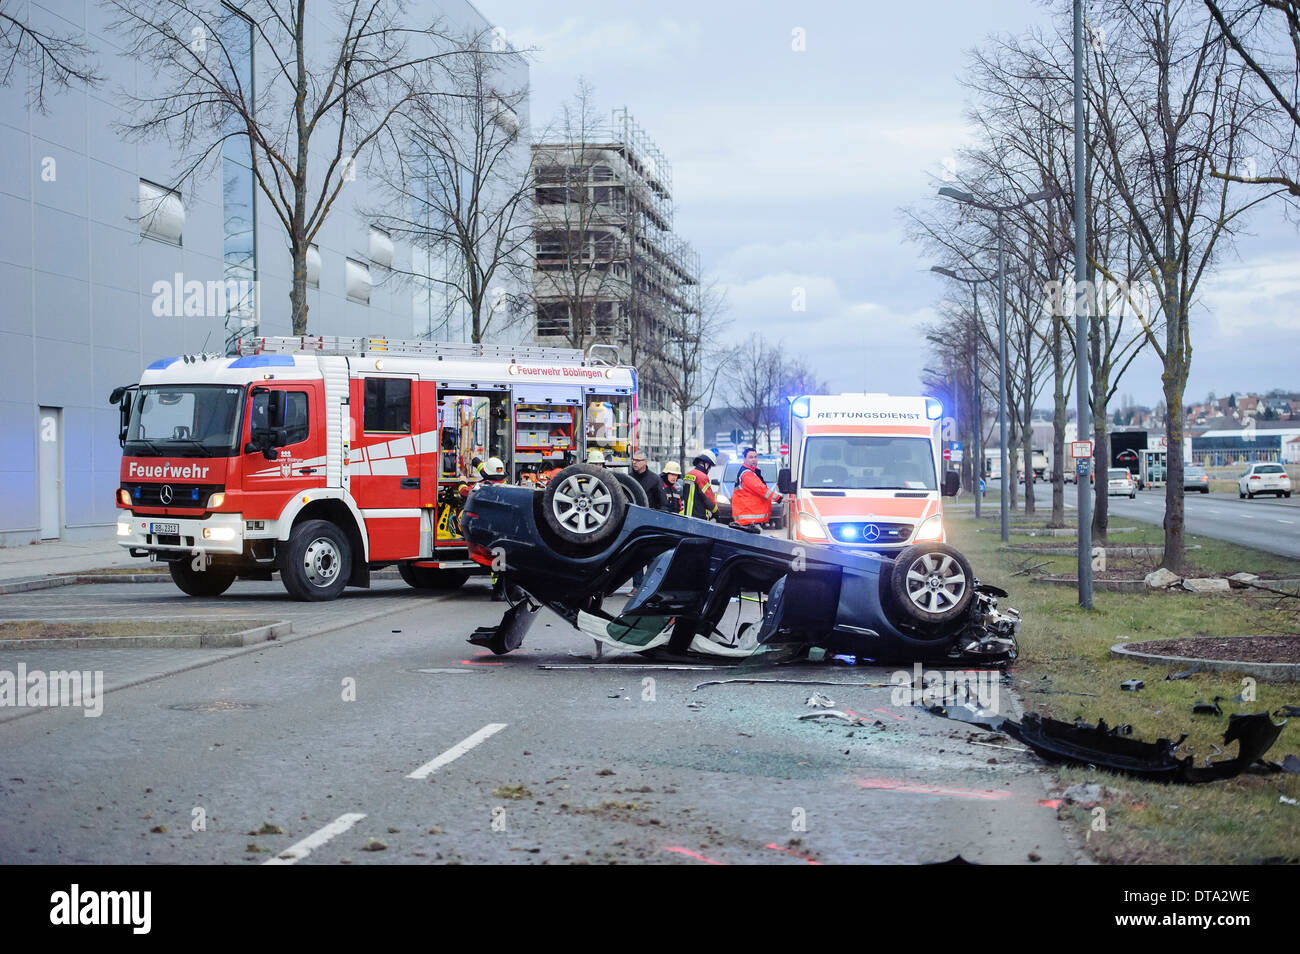 Ambulance and a fire engine at the scene of an accident, BMW sports car on its roof, overturned car, Germany - Stock Image